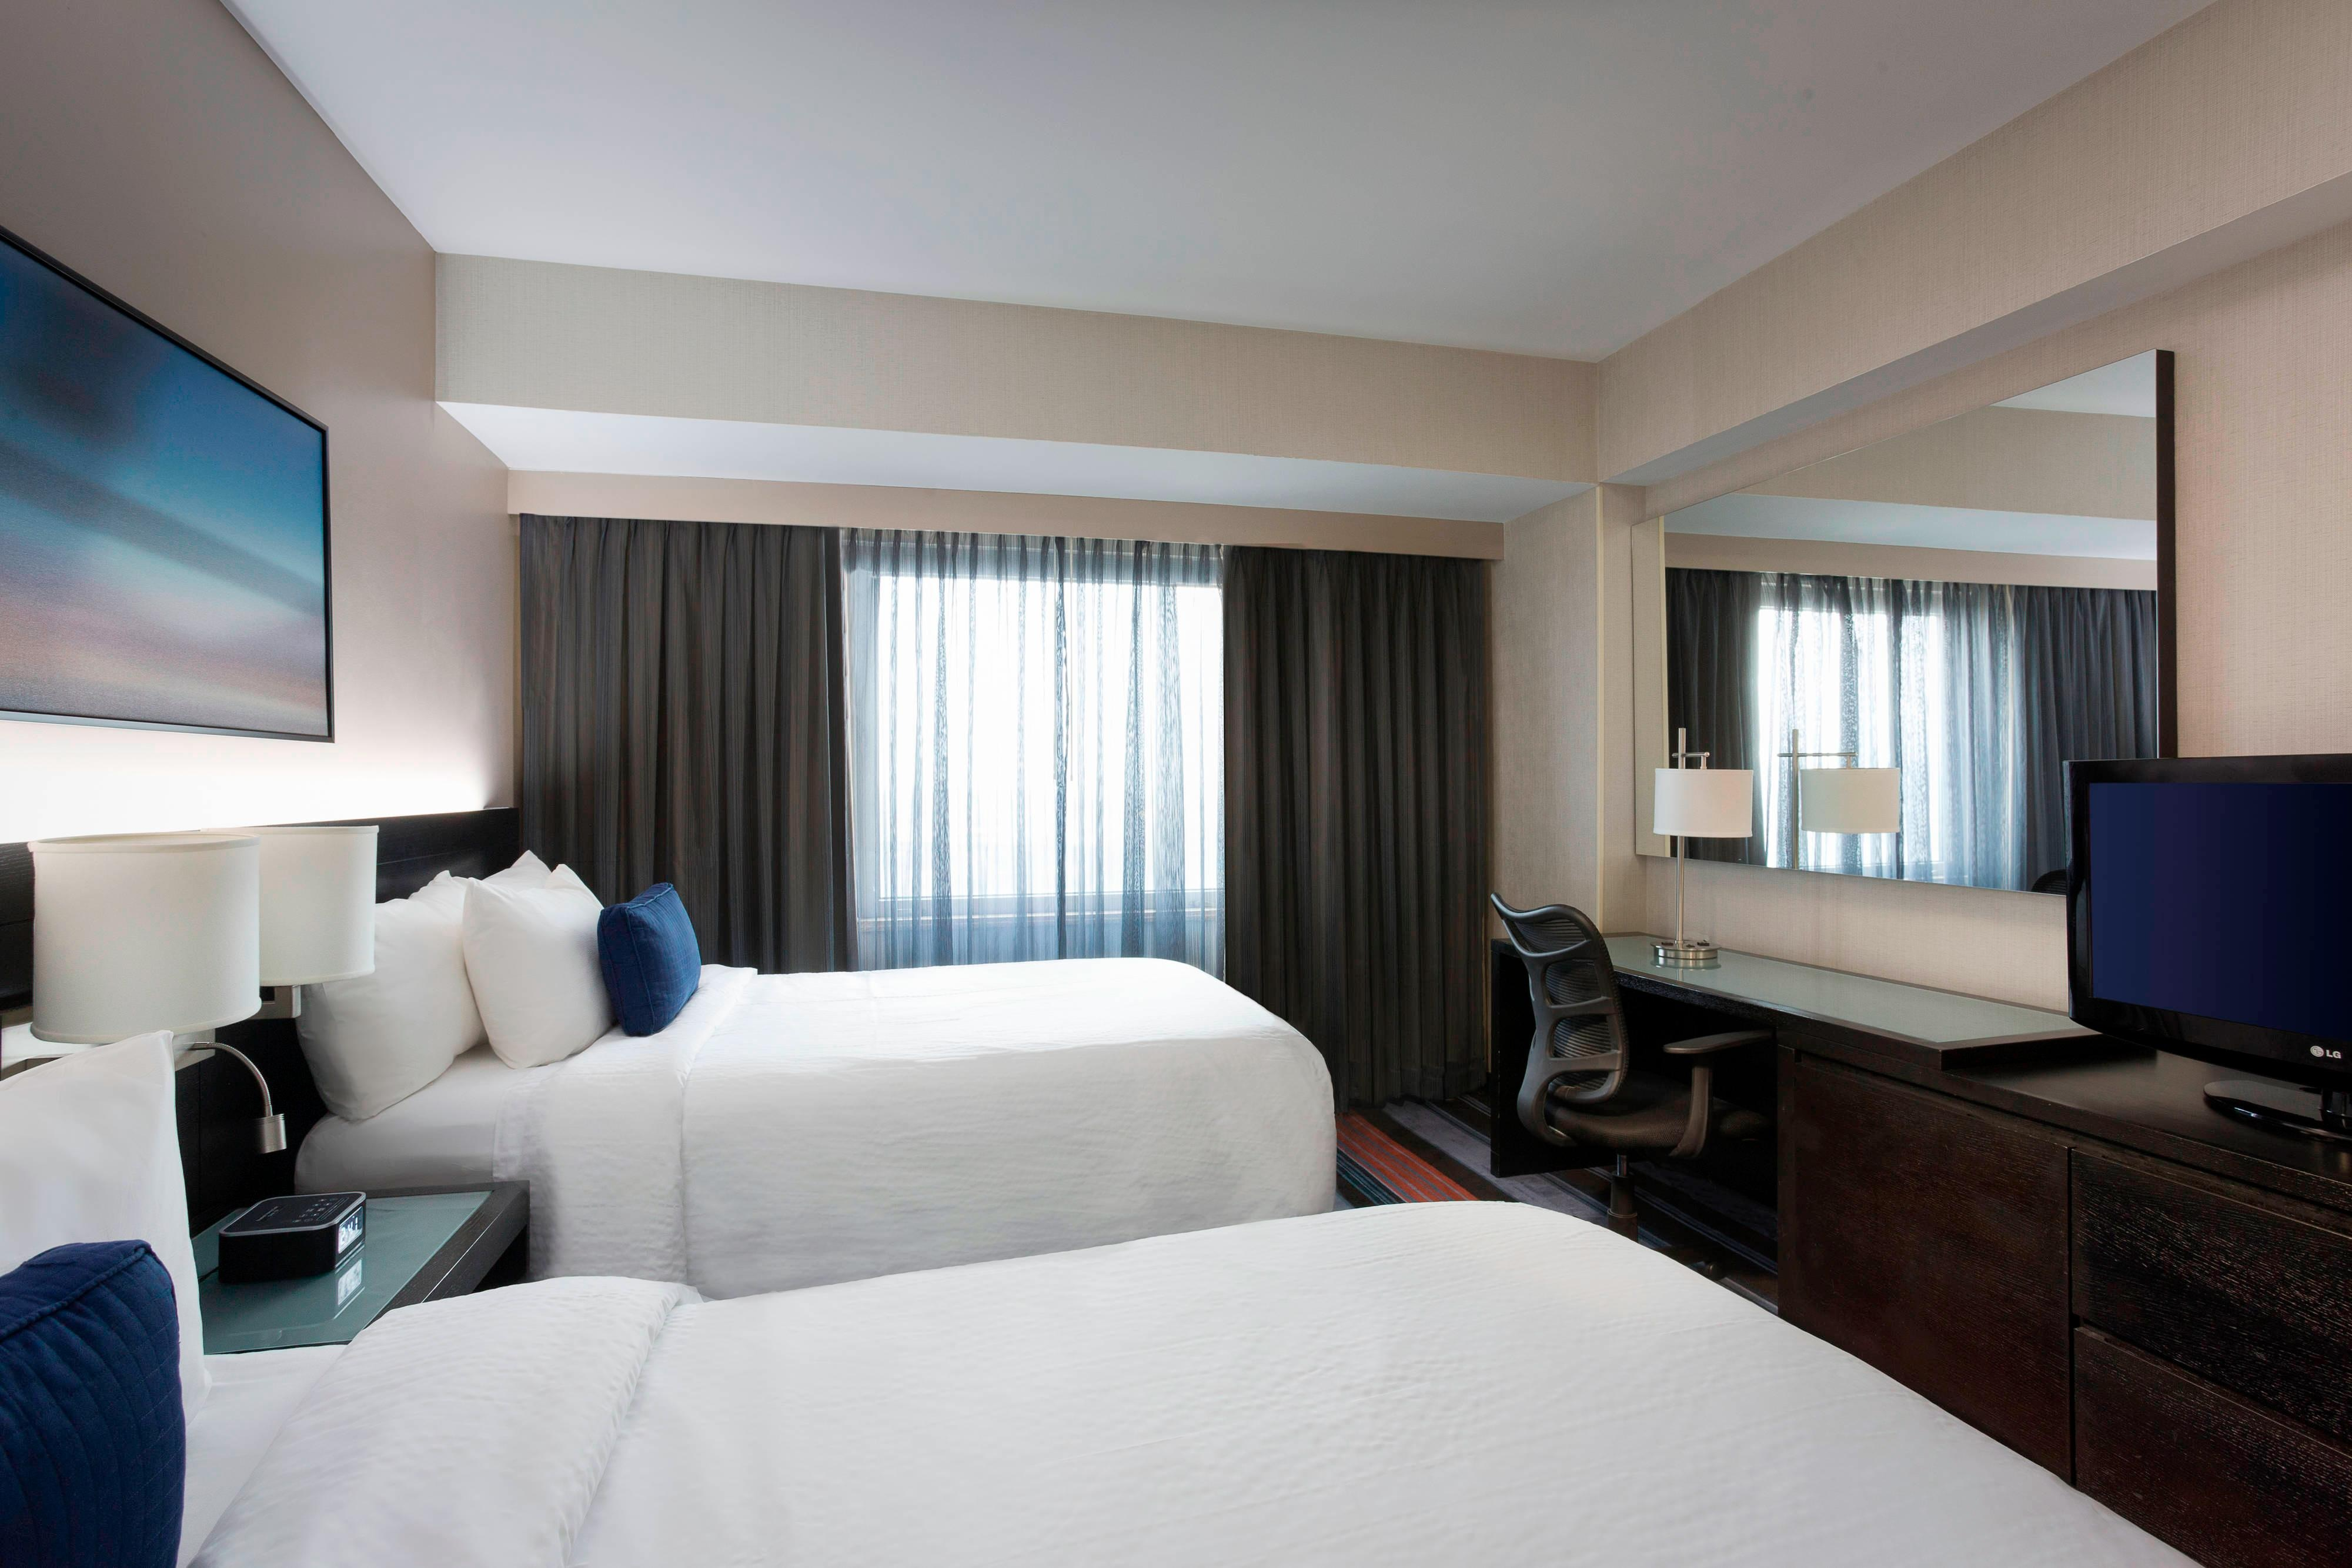 Hotel Room near JFK Airport